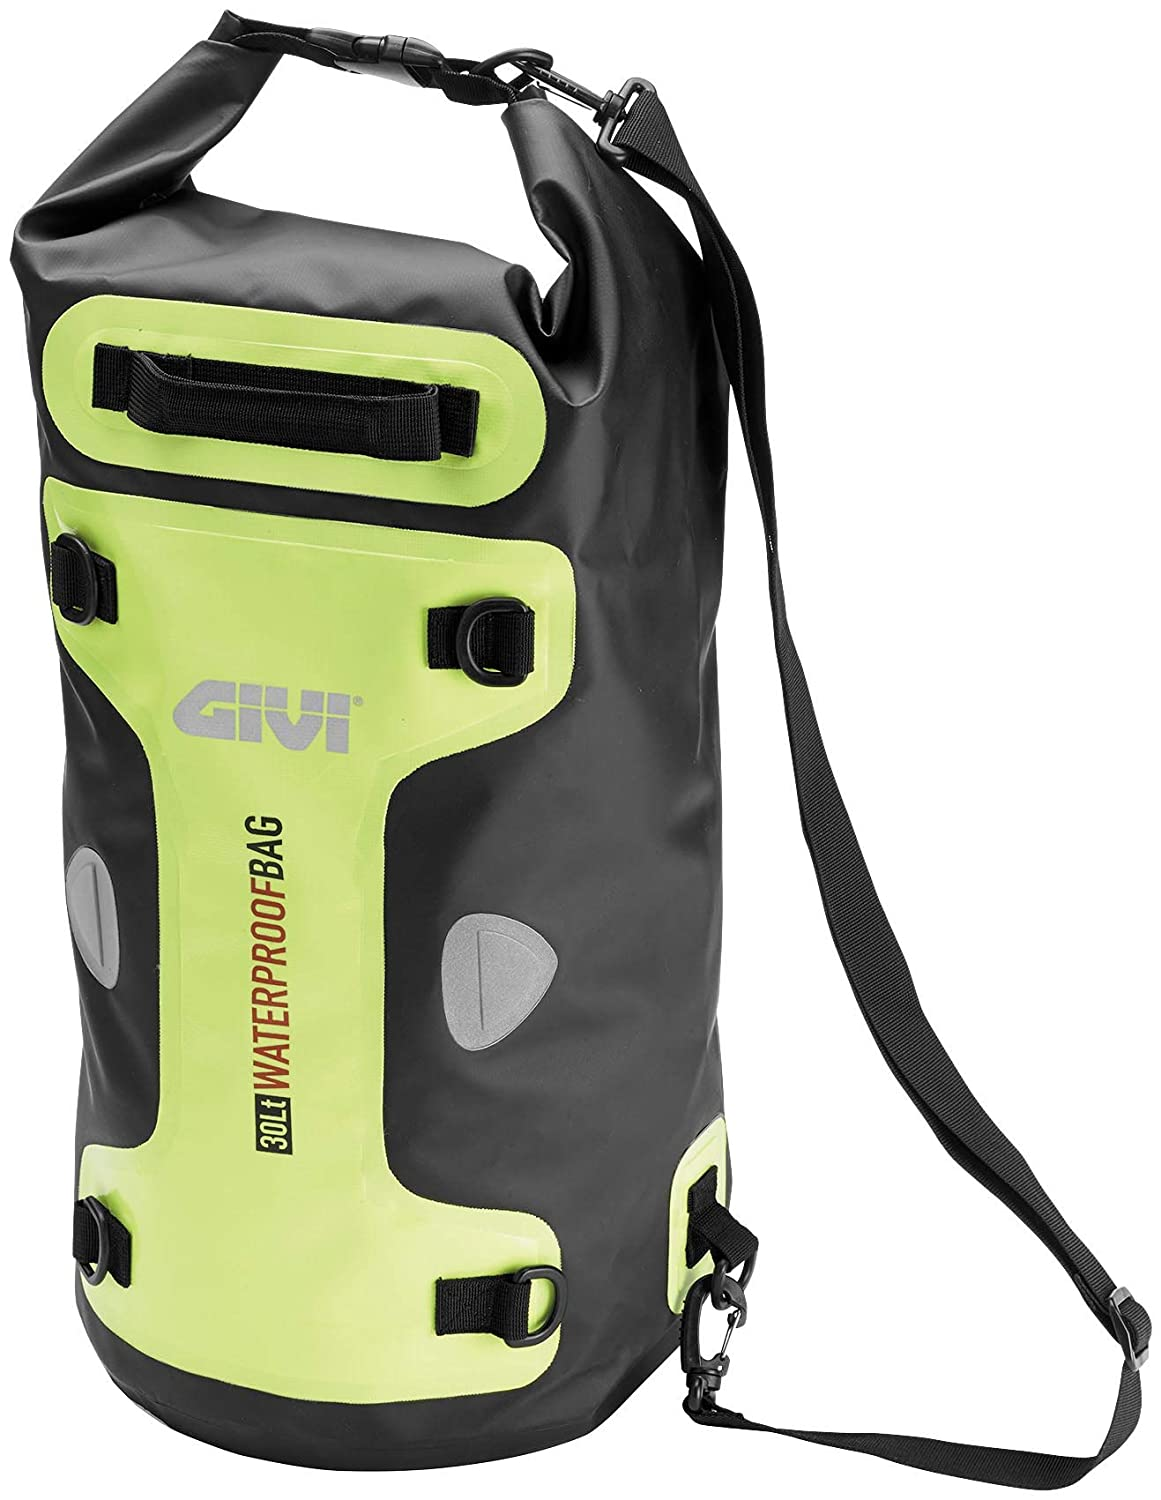 WP407 - Givi Waterproof Roll Bag 30L